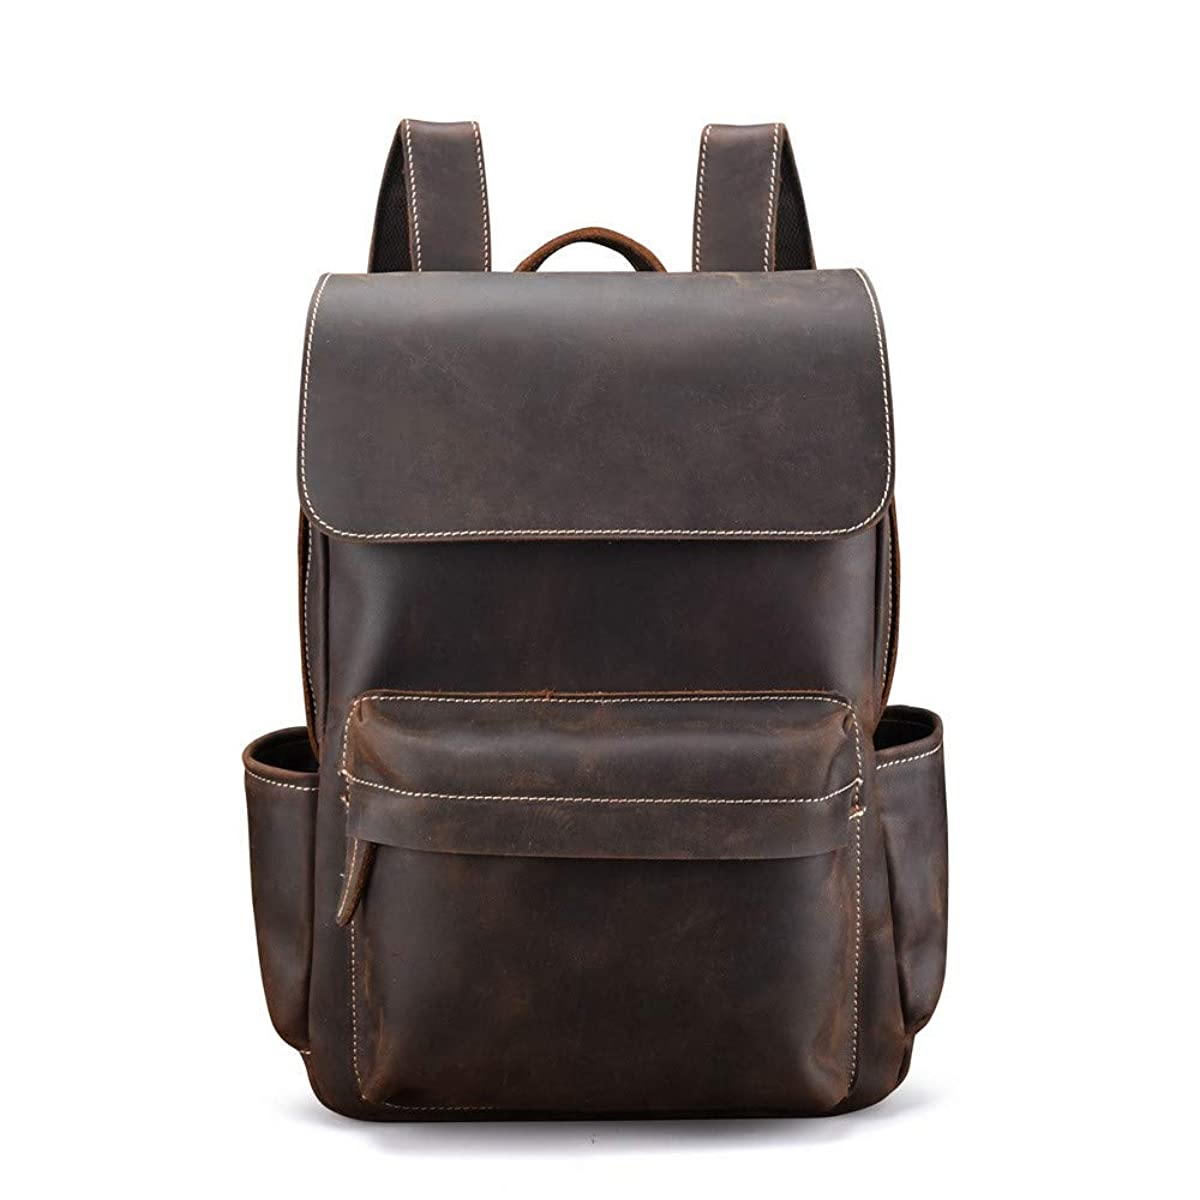 JFGUOYA Men's Backpack Genuine Leather Travel Bag Extra Capacity Casual Daypacks - Leather Slim Dual Compartment Laptop Business Backpack,Brown